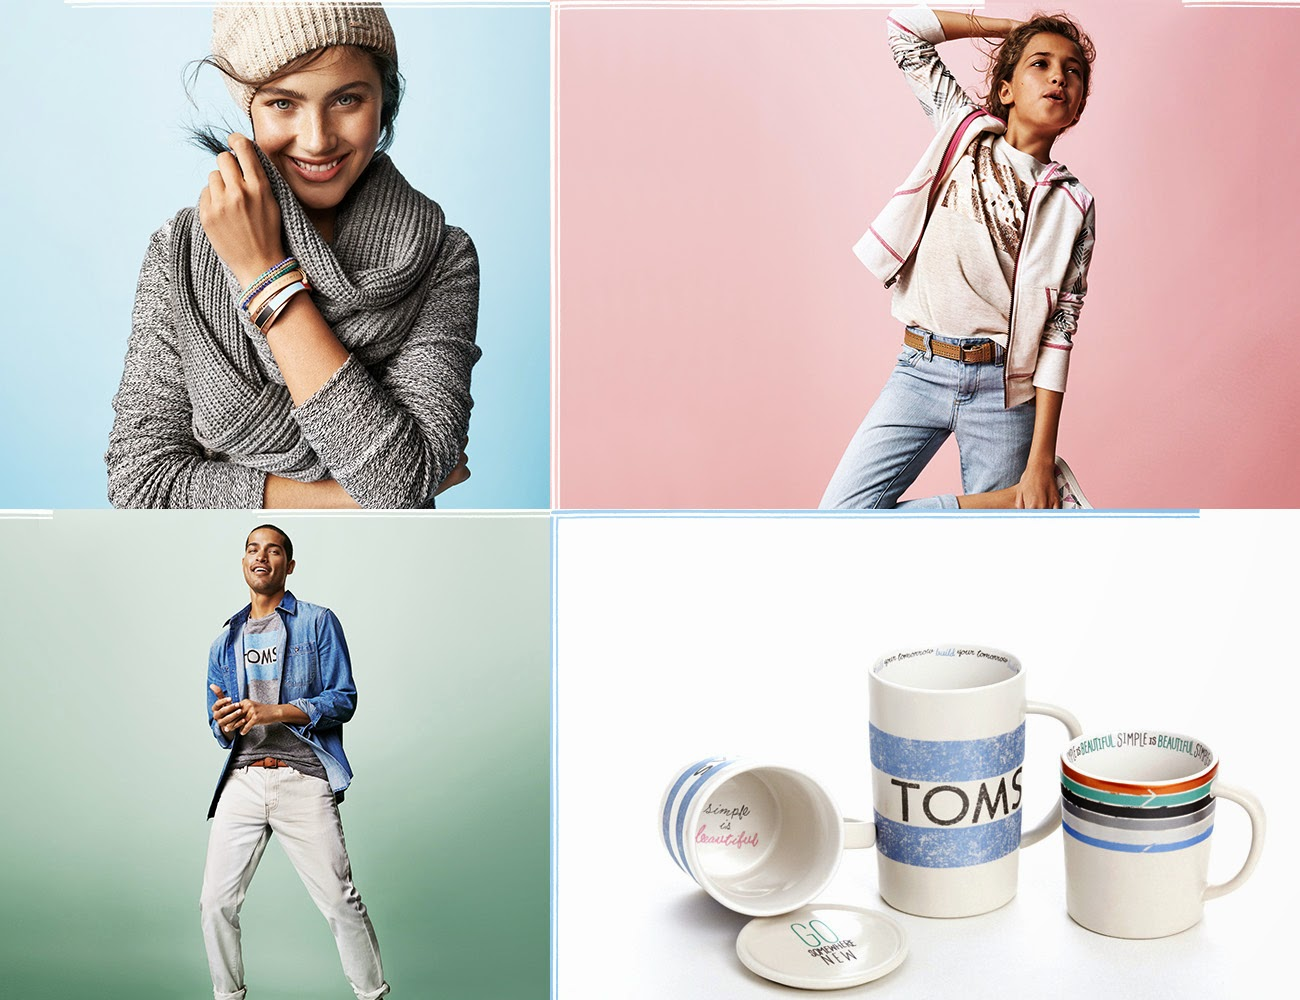 Target and TOMS Partner Up for the Holidays #TOMSforTarget